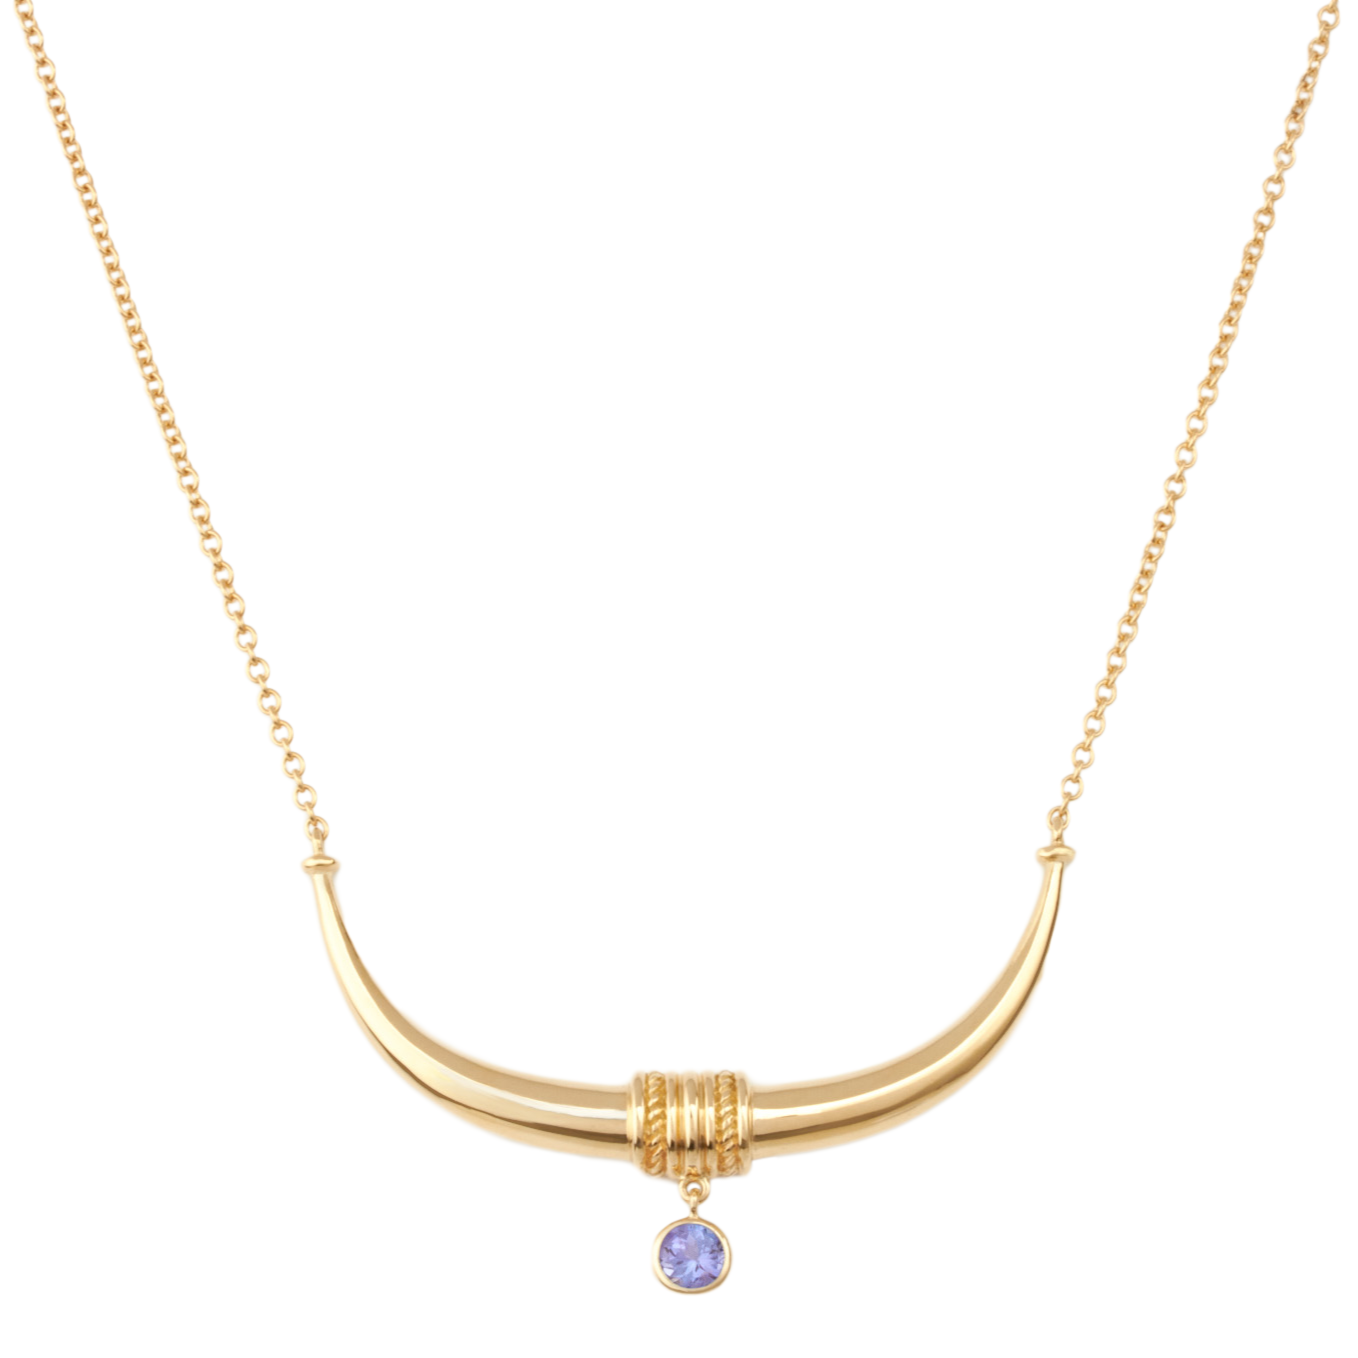 Toka-Leya Necklace - Tanzanite